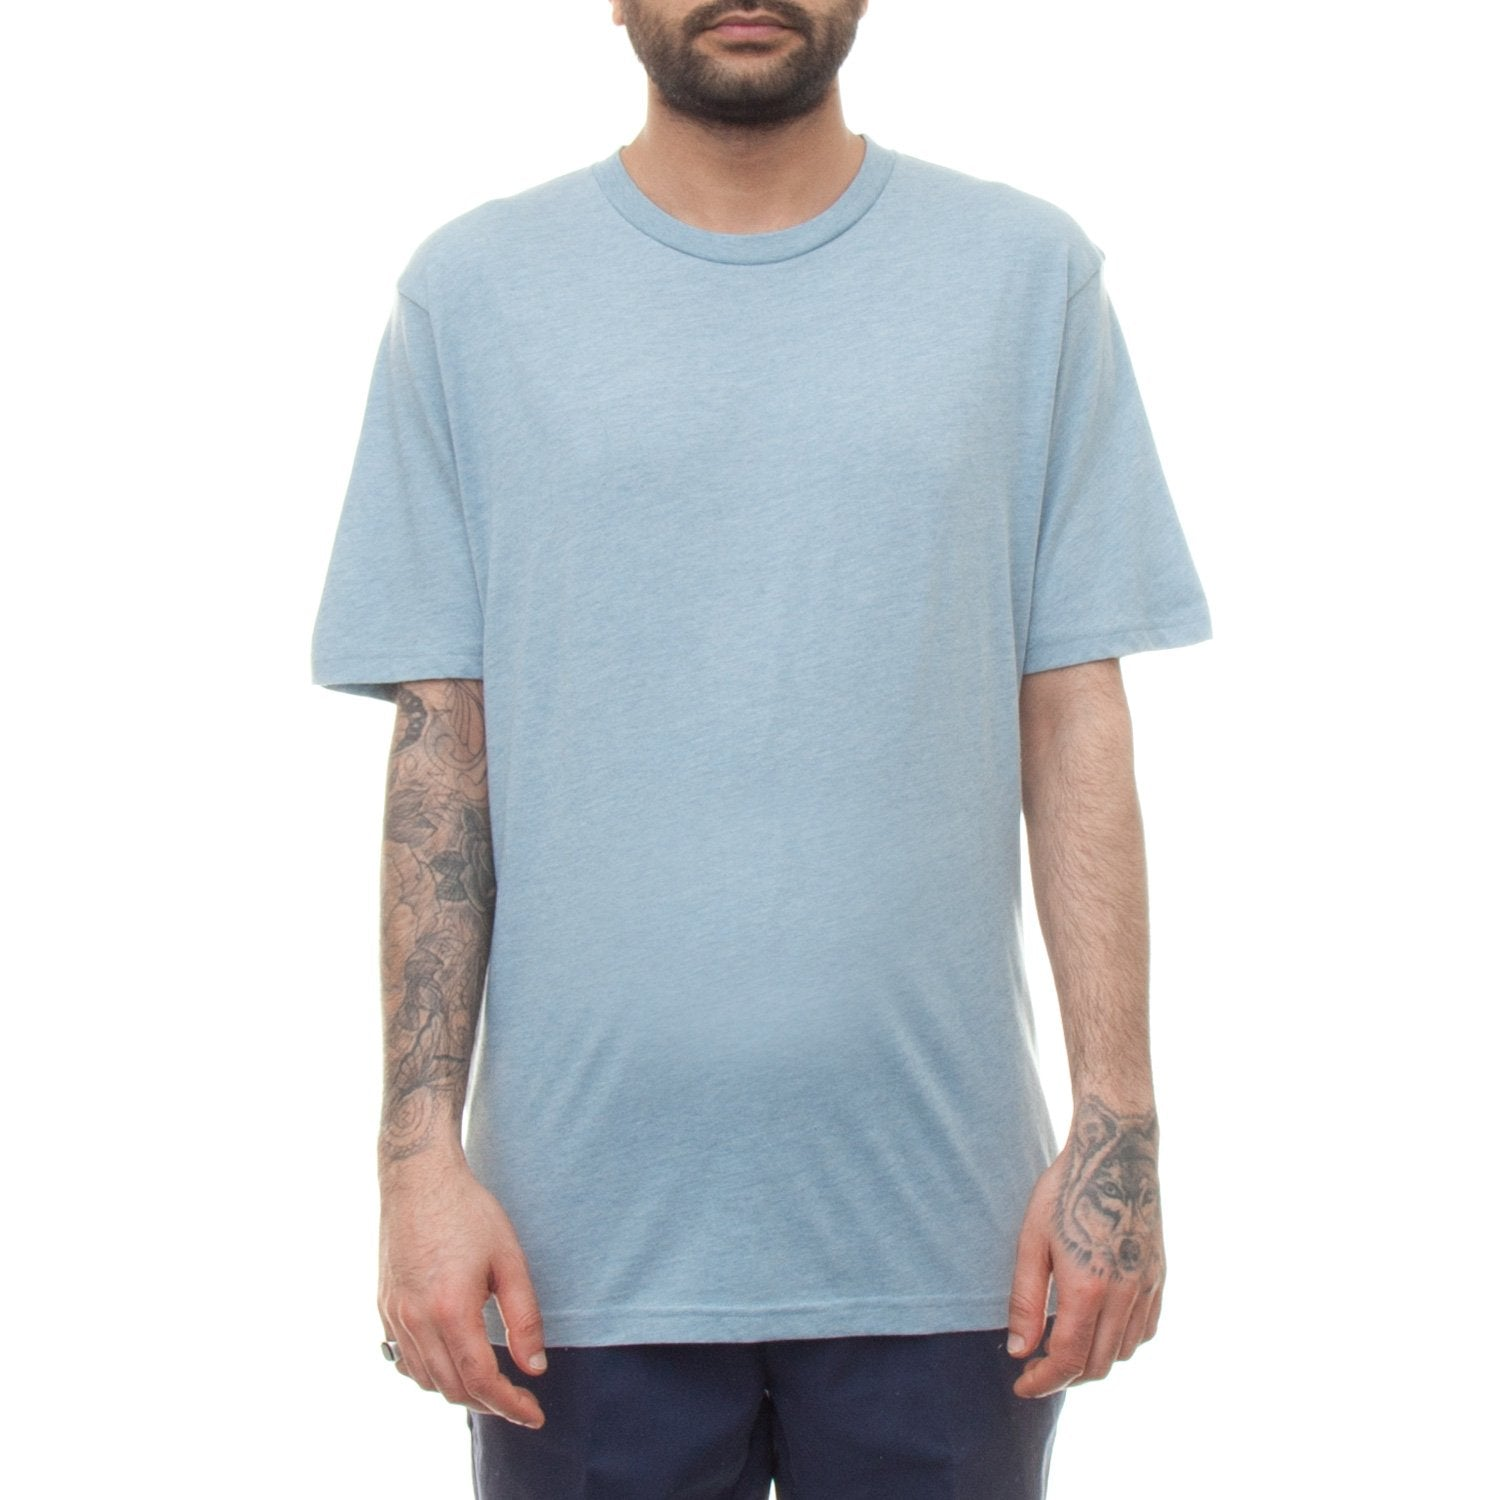 Carhartt S/S Holbrook LT T-Shirt (Dusty Blue Heather)-4